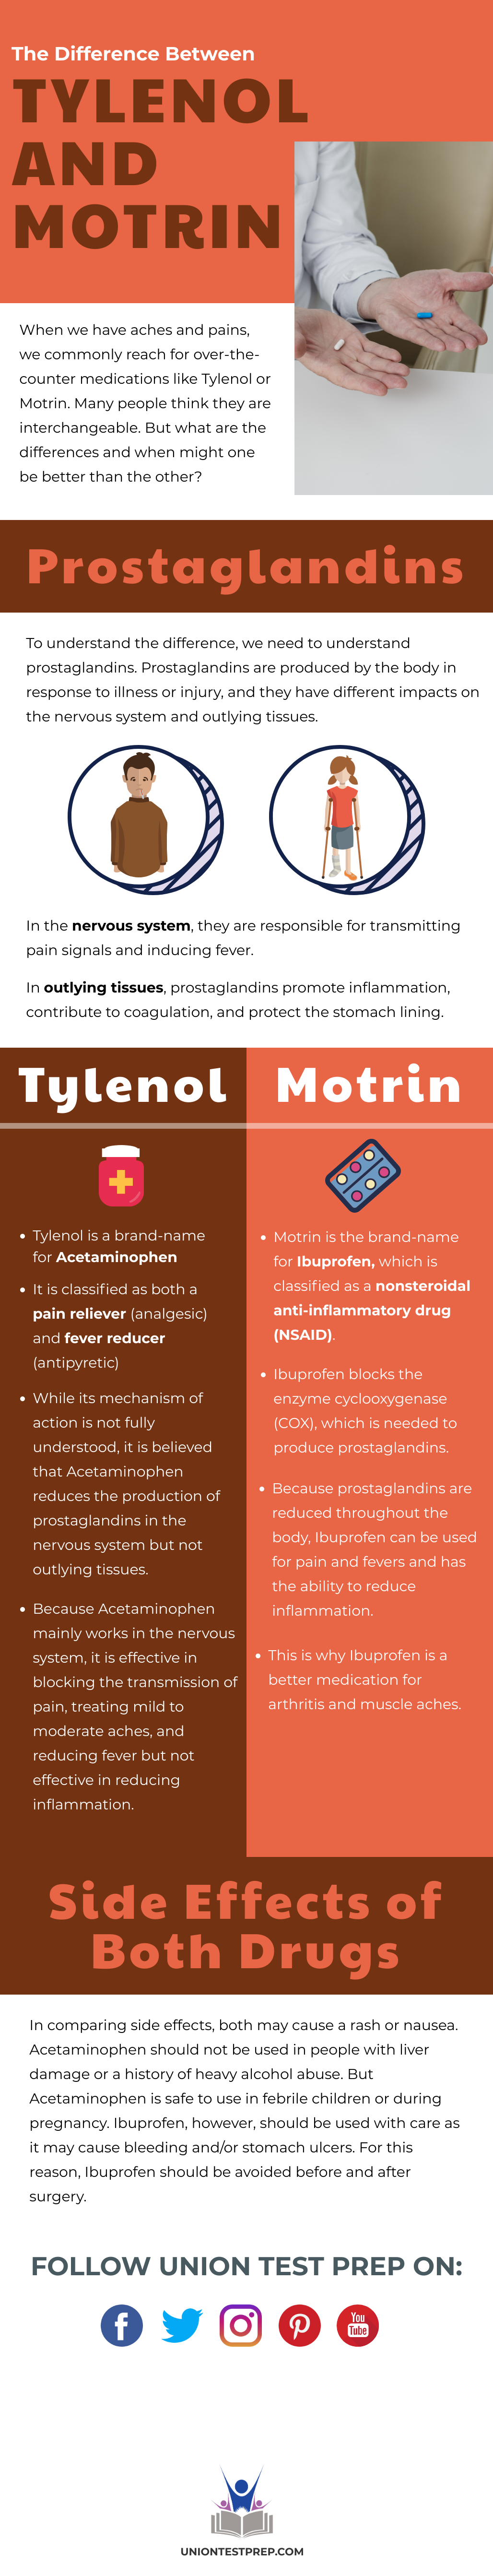 difference between tylenol motrin